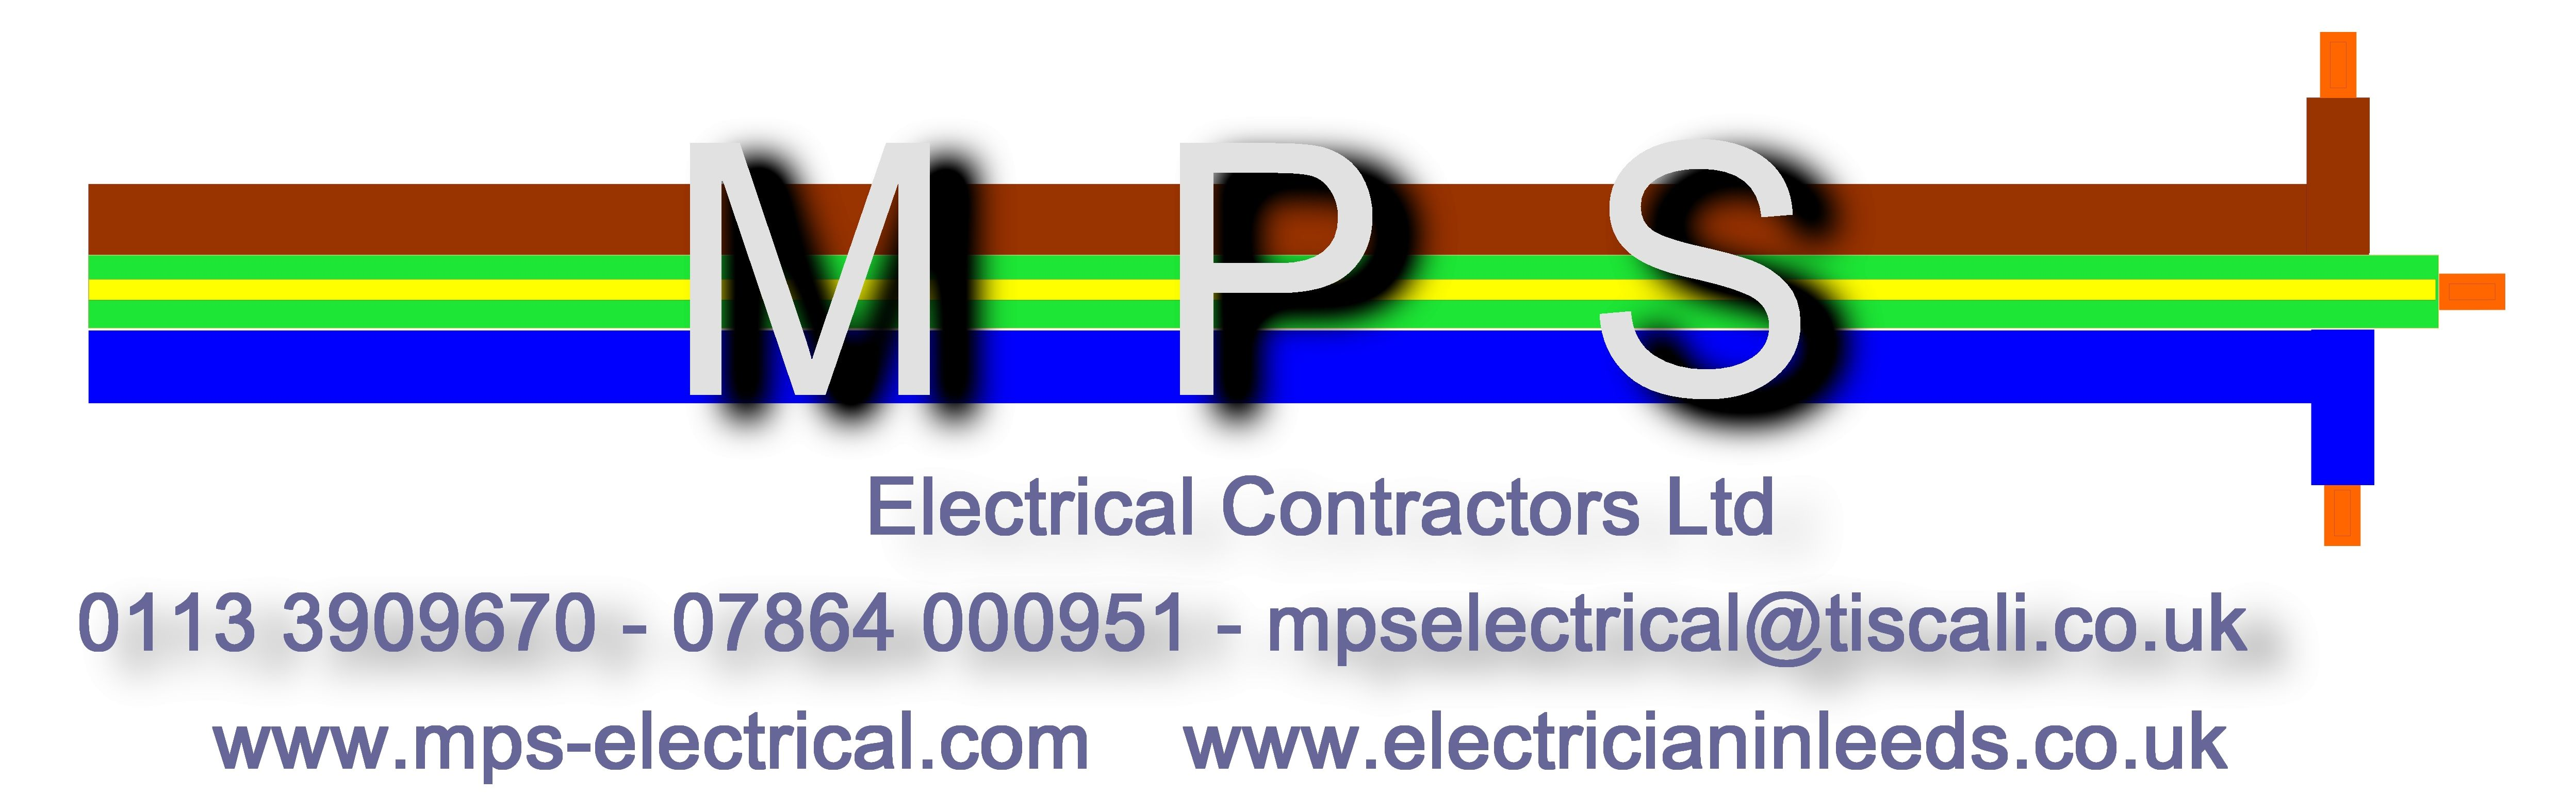 Quality Electricians In Leeds MPS Electrical Ltd 0113 3909670 - 07864 000951  www.electrical-inspection-leeds.co.uk www.electrical-survey-yorkshire.co.uk www.plaster-leeds.com  www.electrician-bradford.com www.electricianleeds.eu  www.electricians-leeds.org.uk www.electricianinleeds.co.uk www.electrician-wakefield.com www.electricians-leeds.com www.electrician-leeds.net www.mps-electrical.com  www.electrician-leeds.info